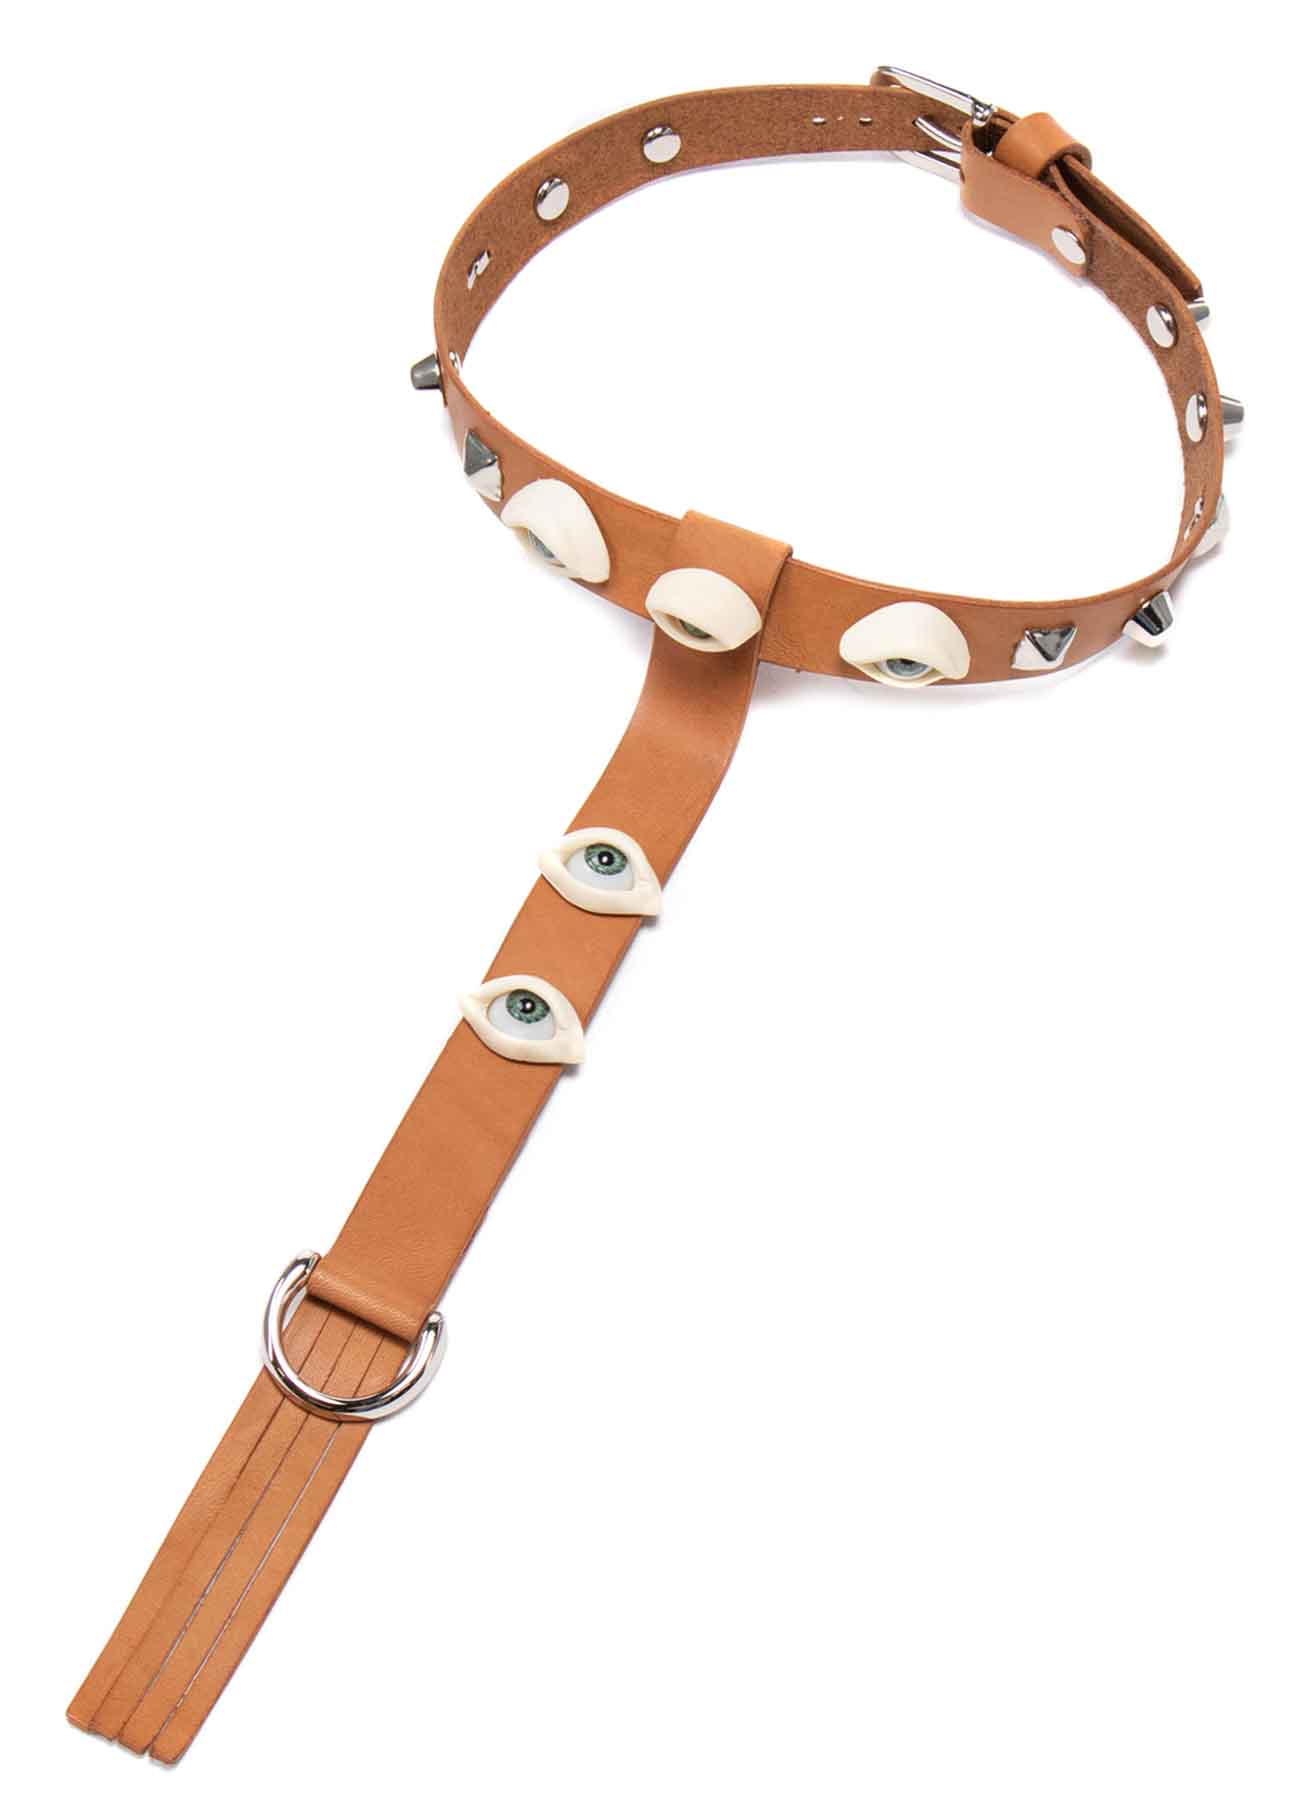 THICK TANNED EYE BUTTON CHOKER